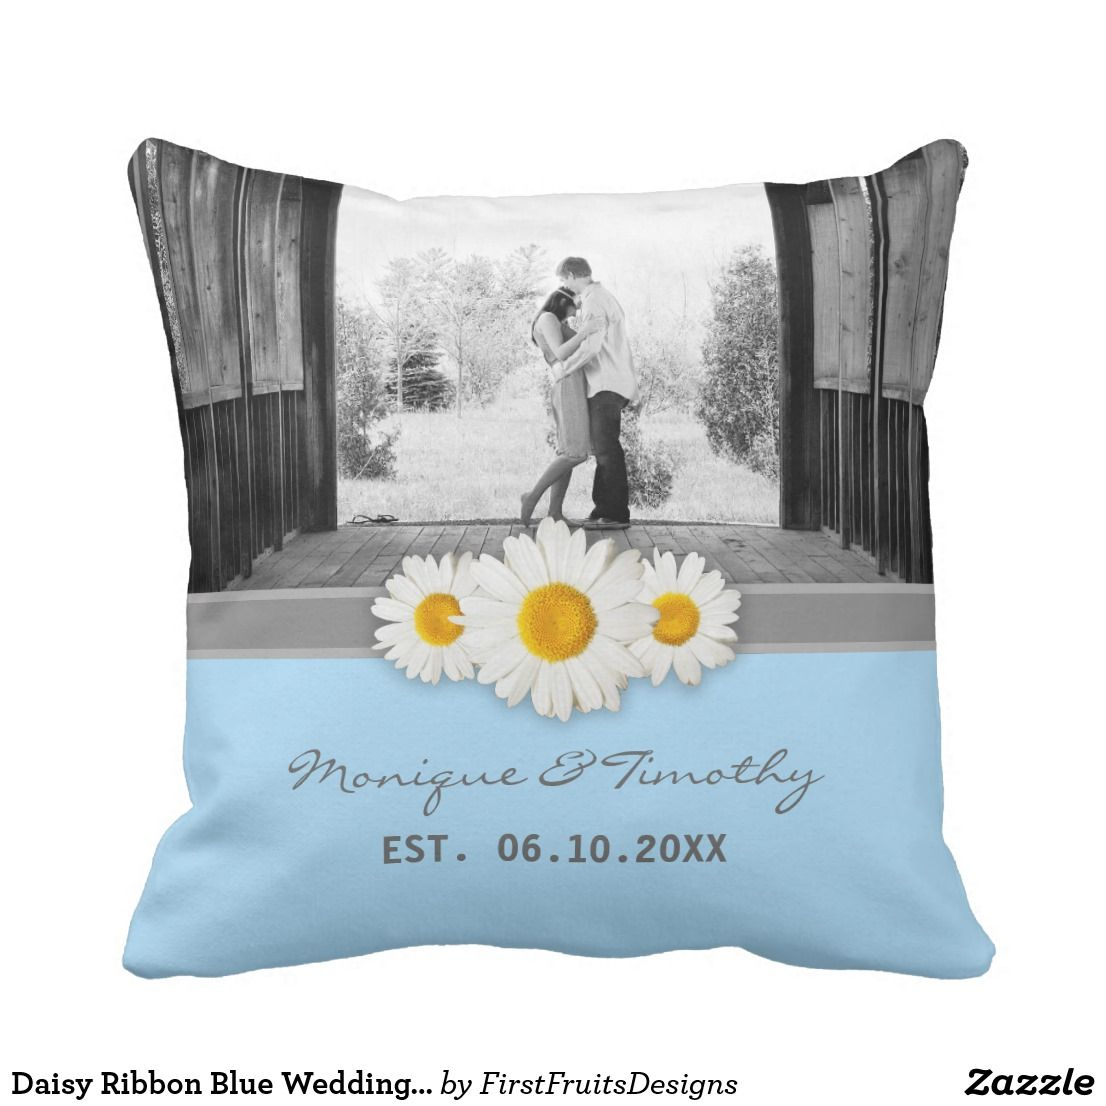 Daisy ribbon blue wedding anniversary throw pillow in my